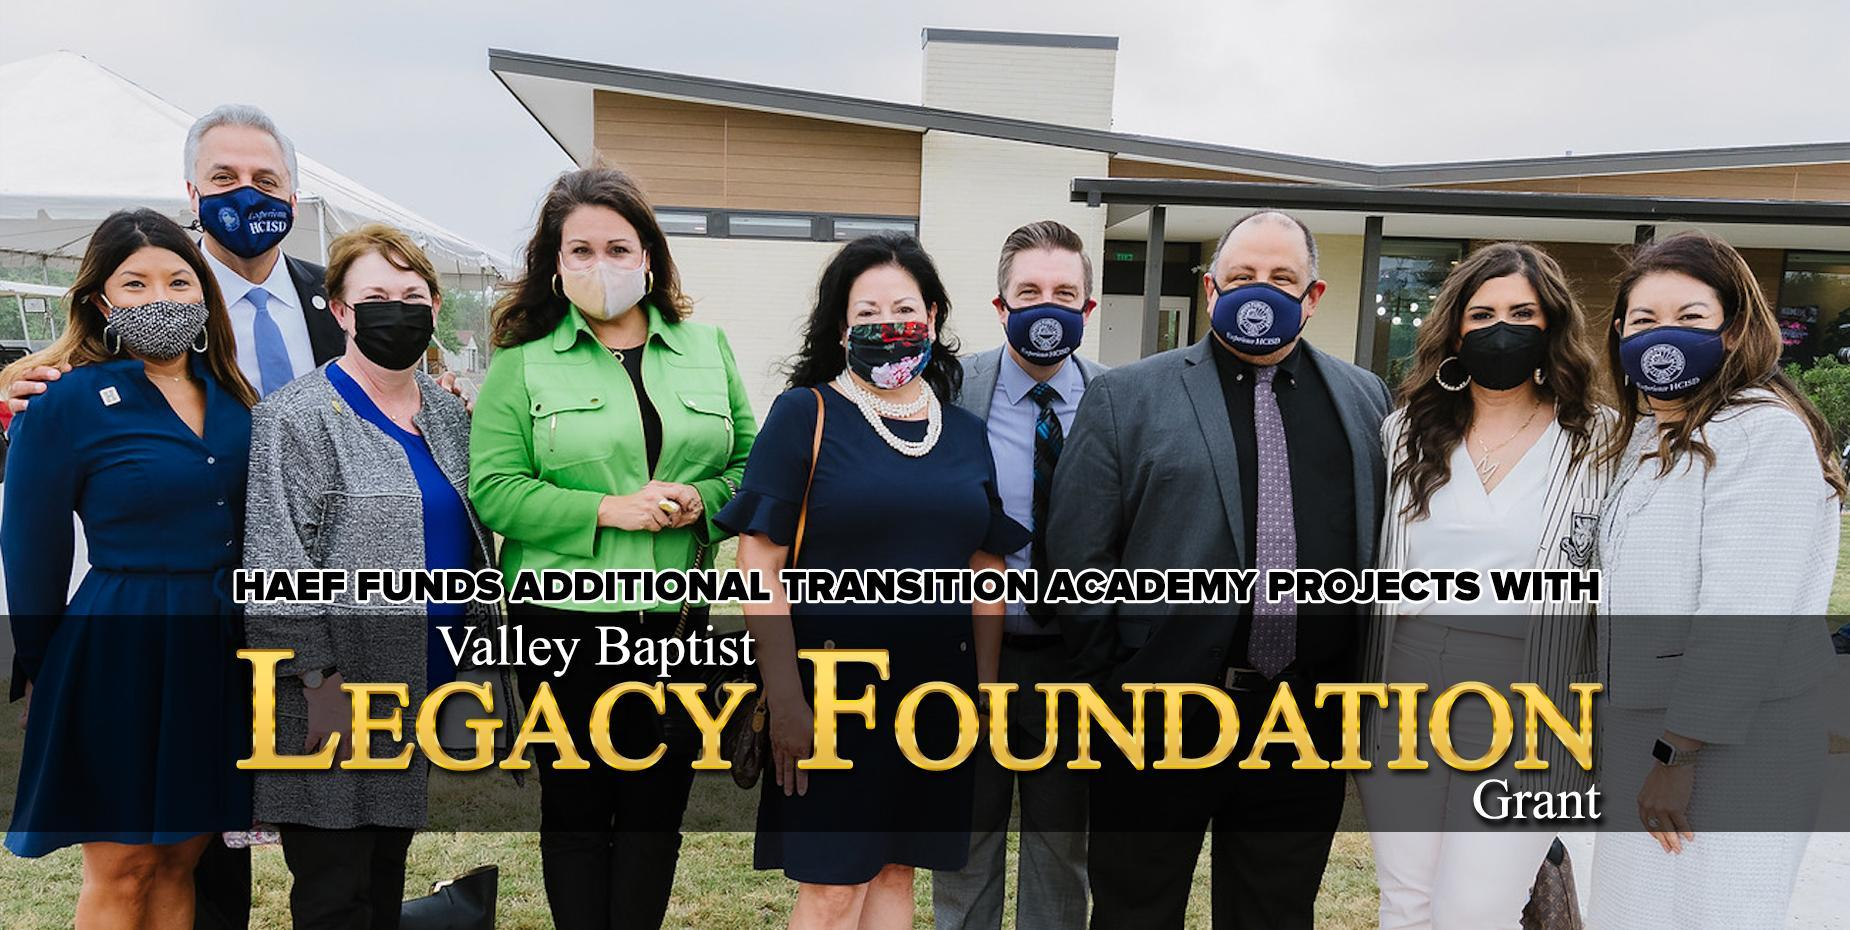 HAEF funds additional transition academy projects with Valley Baptist Legacy Foundation grant